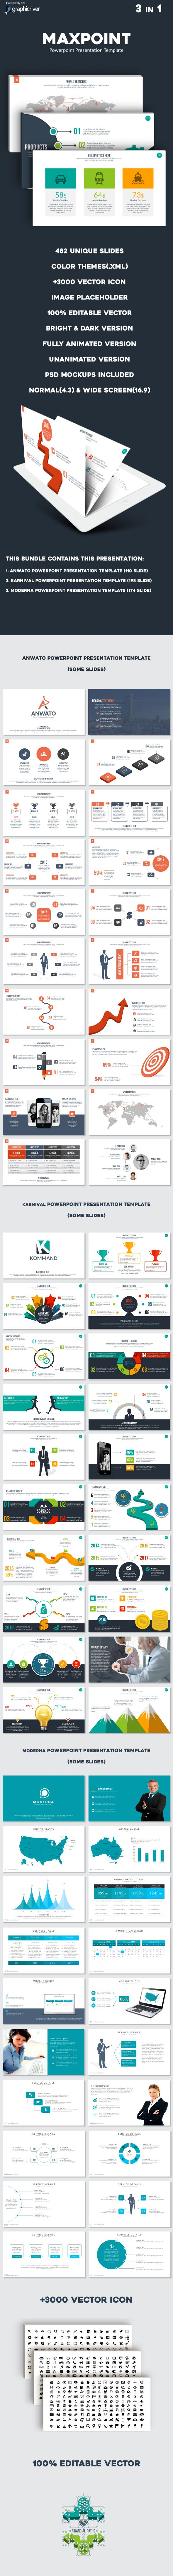 MaxPoint Powerpoint Presentation Template. Download here: http://graphicriver.net/item/maxpoint-powerpoint-presentation-template/15889108?ref=ksioks